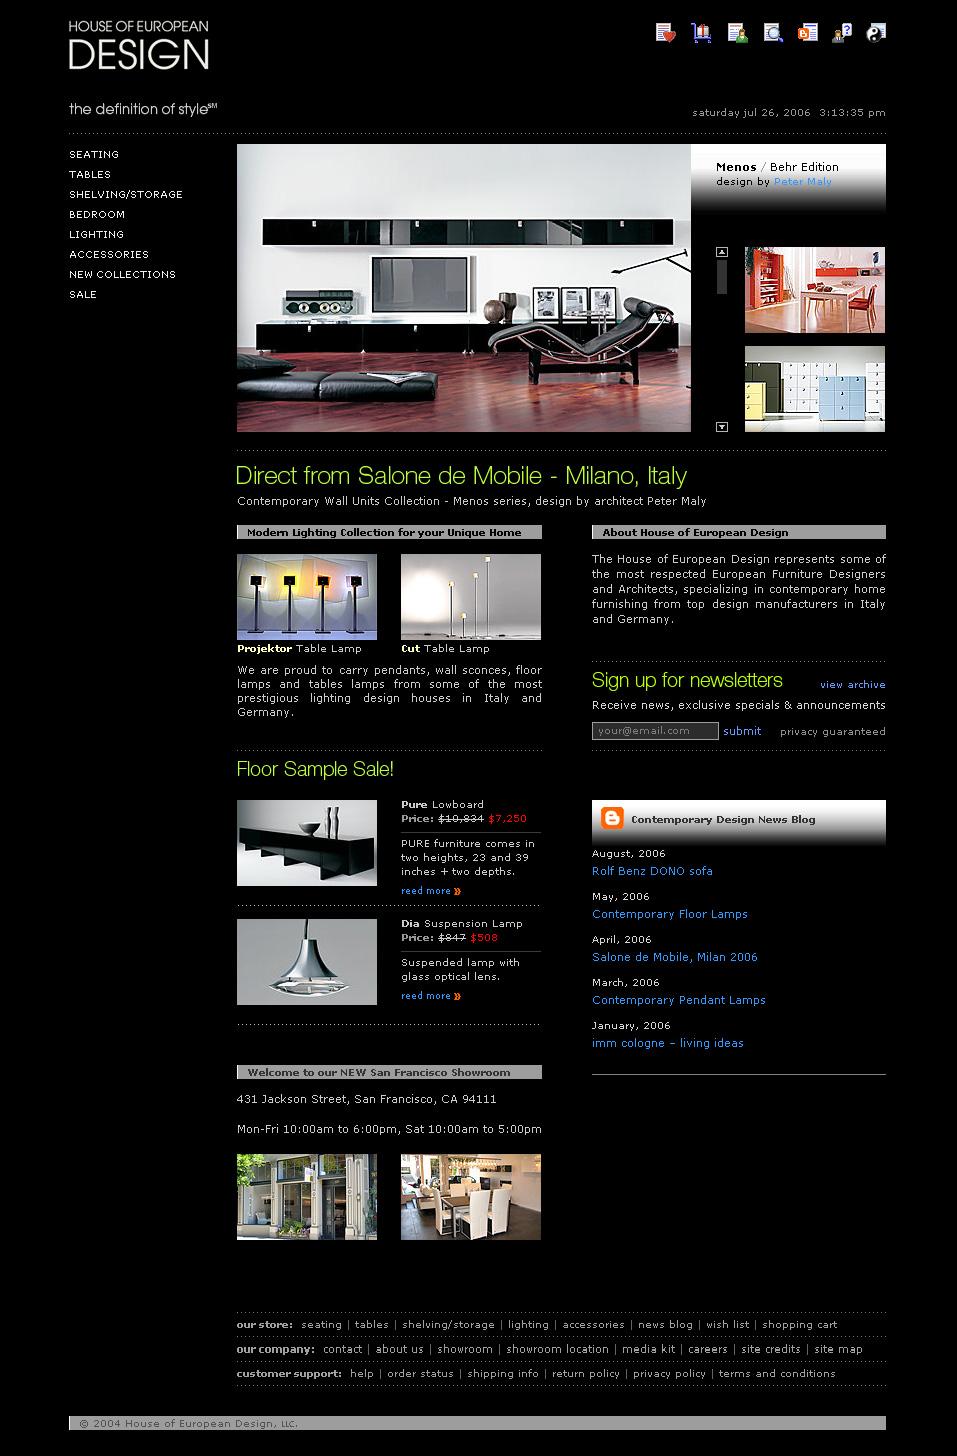 San Francisco furniture store e-commerce web design